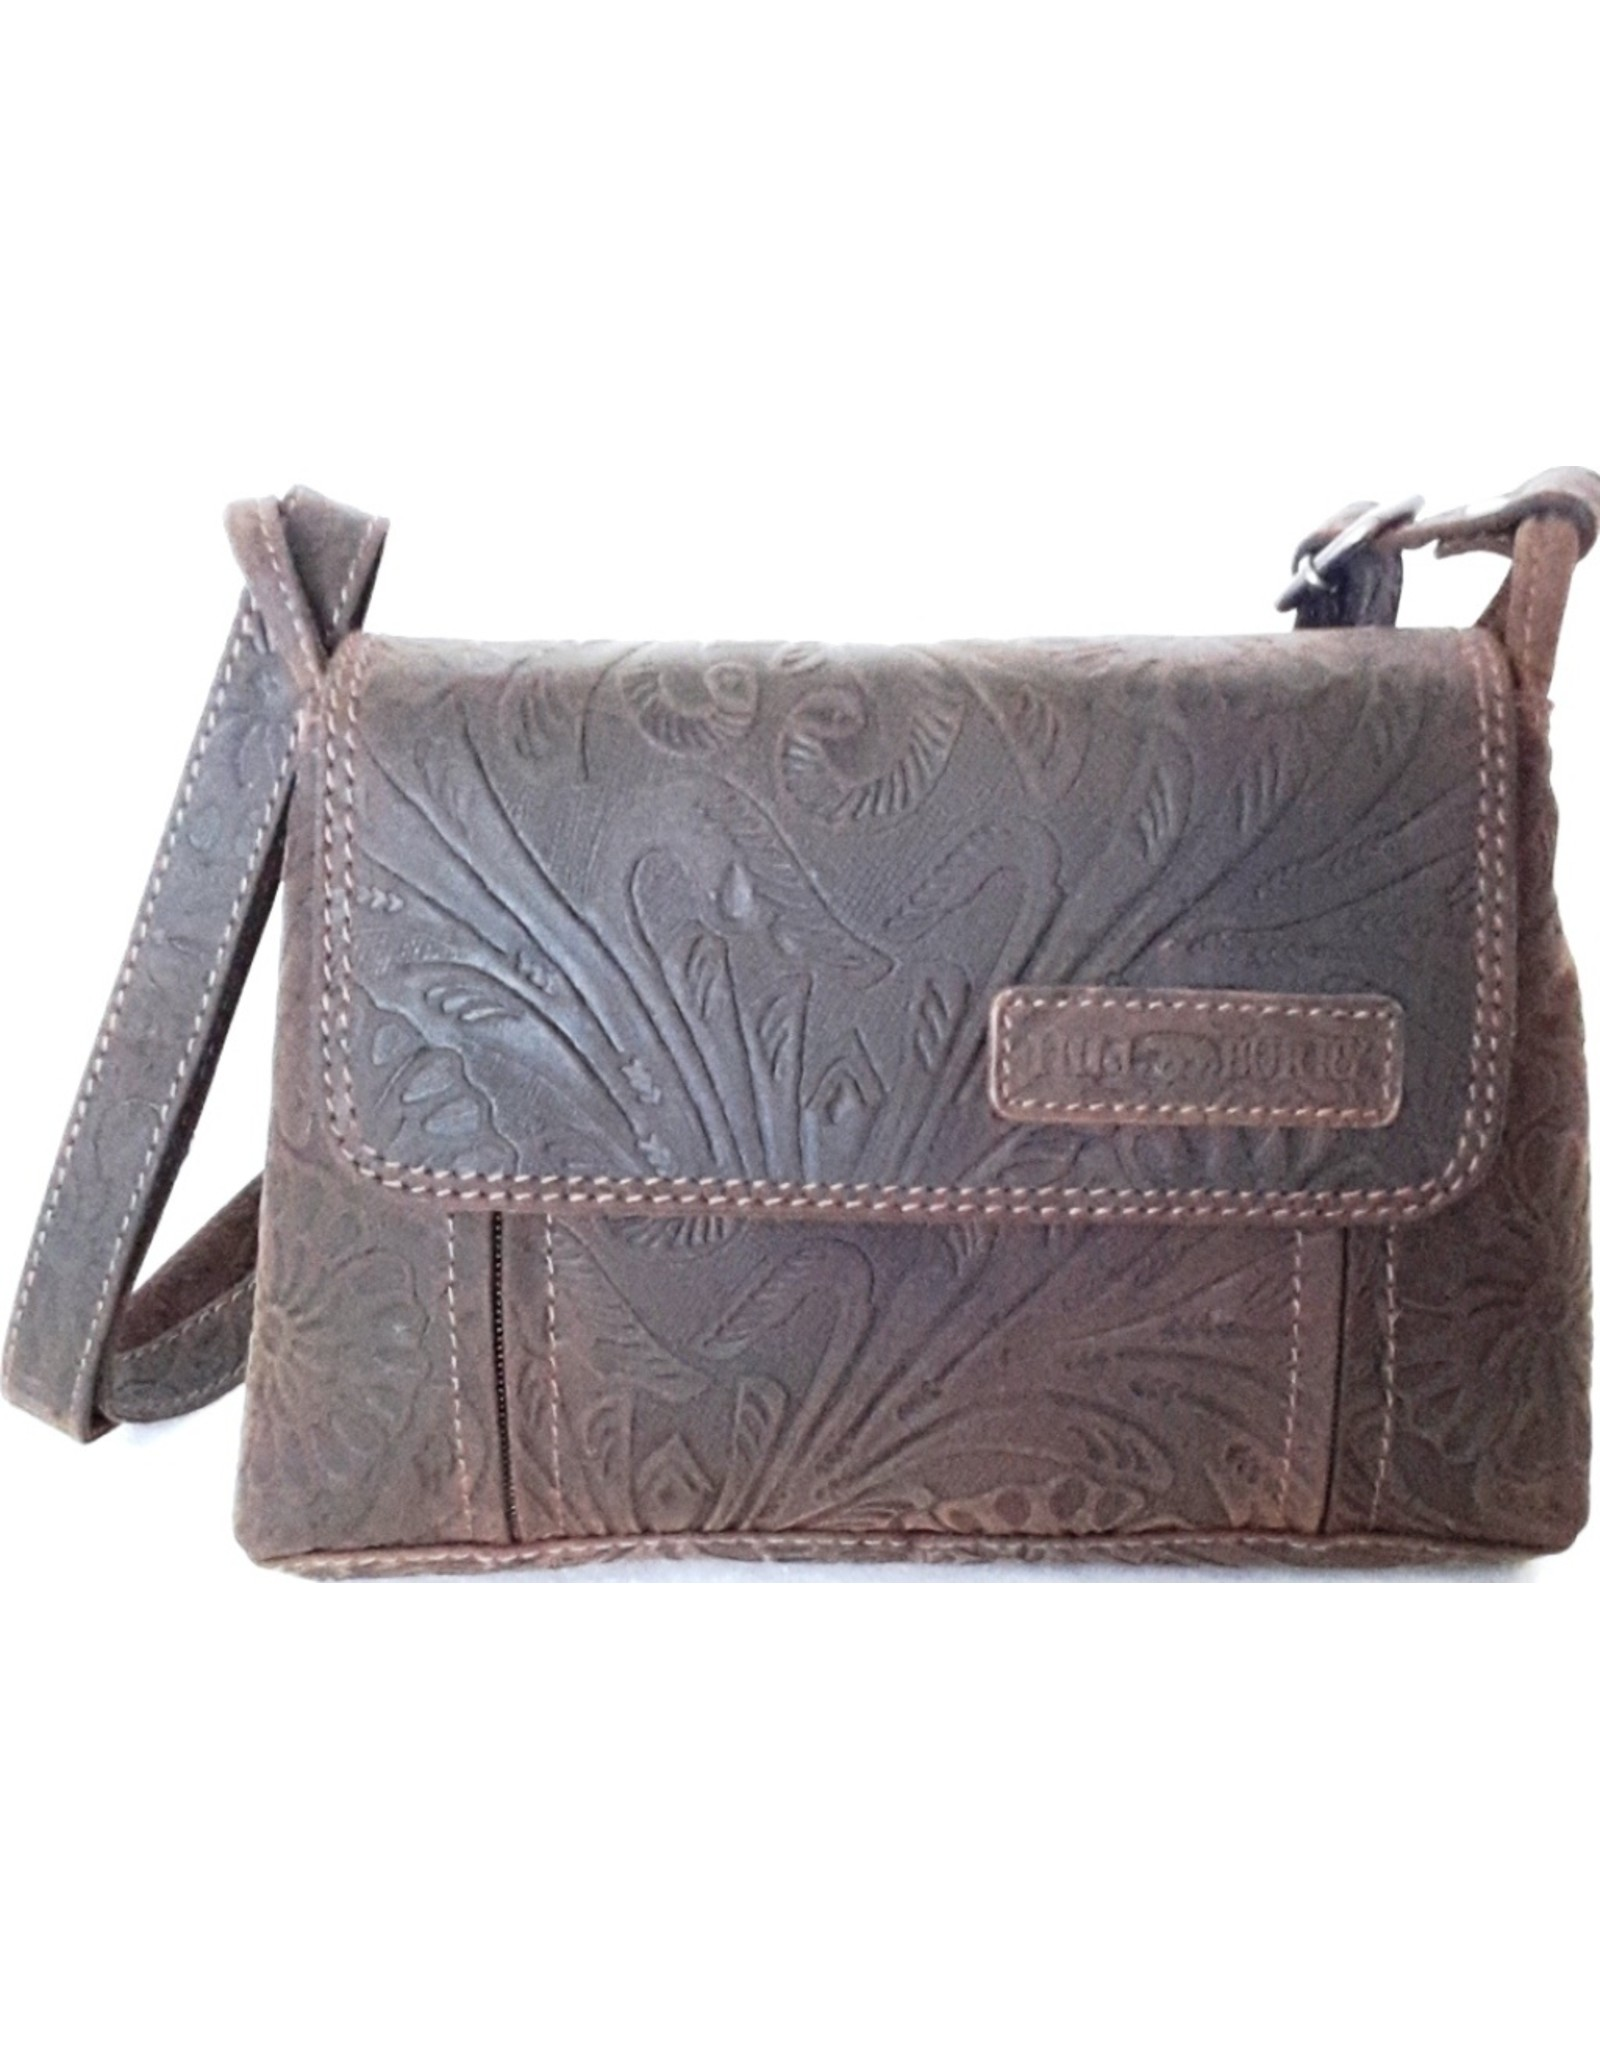 HillBurry Leather shoulder bags Leather crossbody bags - HillBurry shoulder bag with embossed flowers (dark brown)